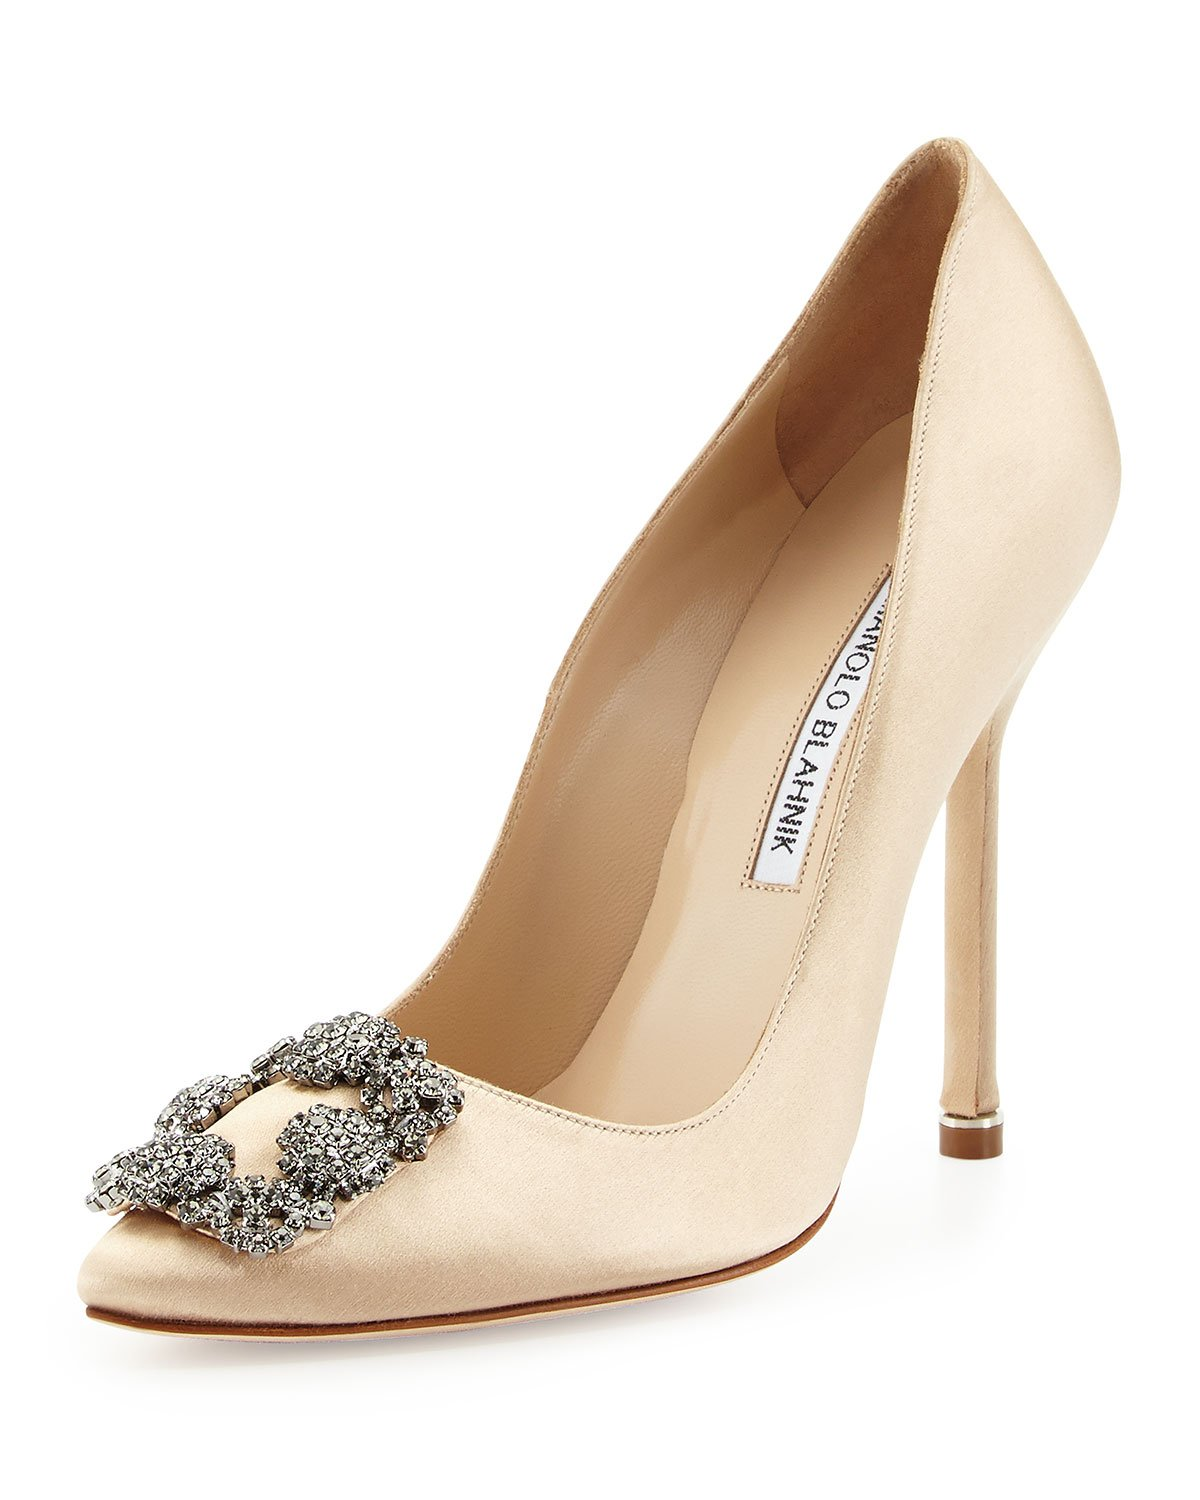 Lyst manolo blahnik hangisi satin crystal toe pumps in for Shoes by manolo blahnik